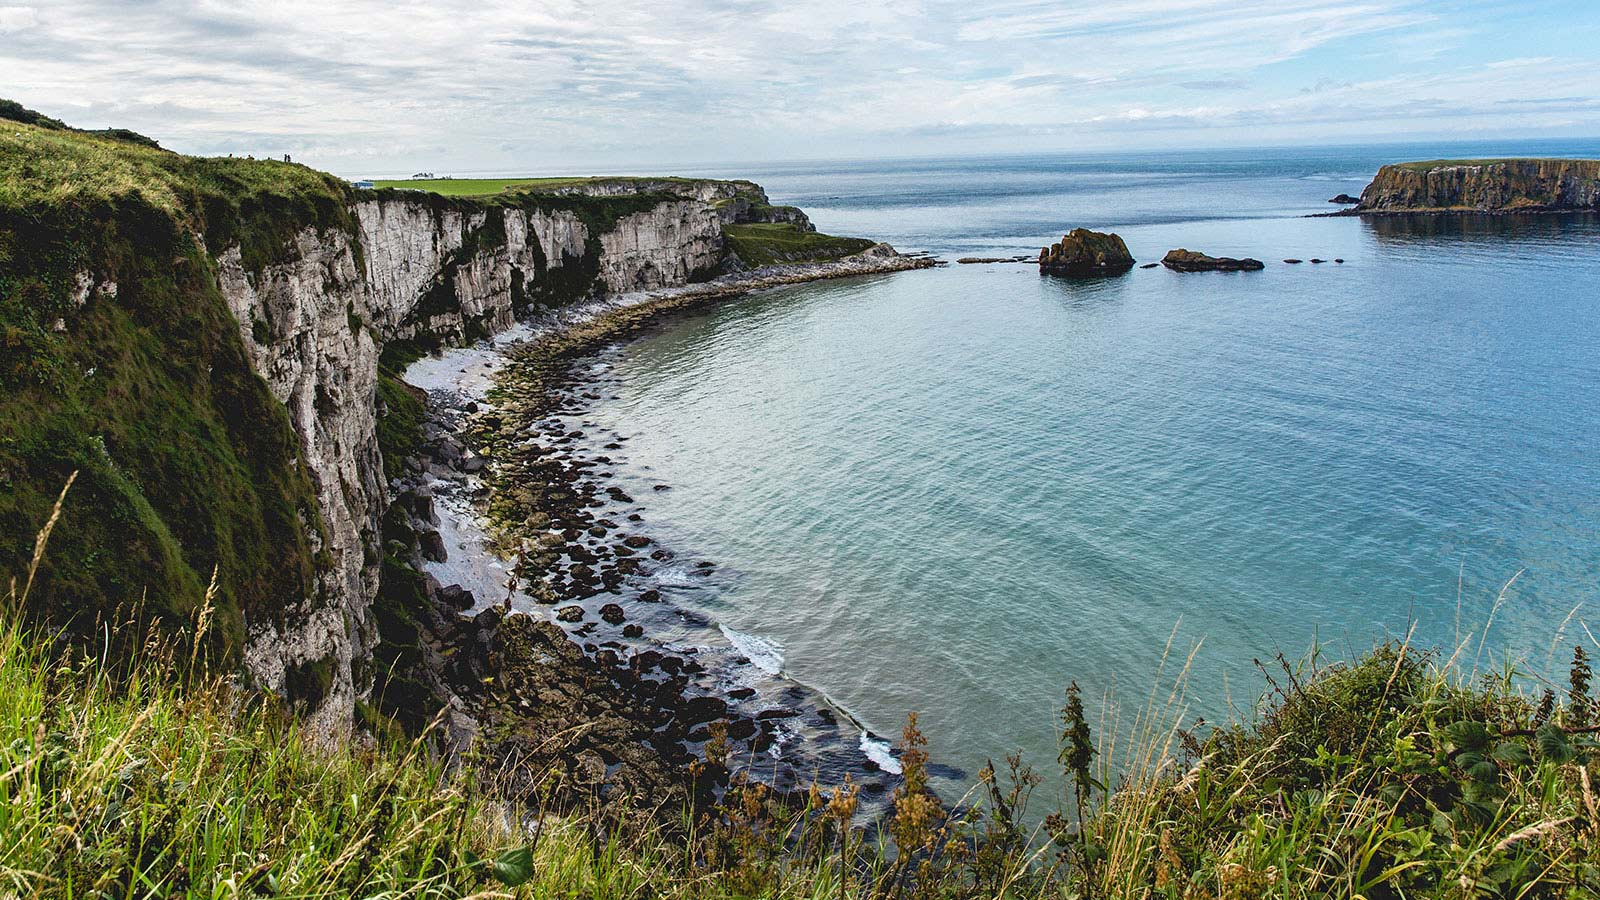 A photo of the rugged Irish coastline, showing a rocky beach and crystal blue waters